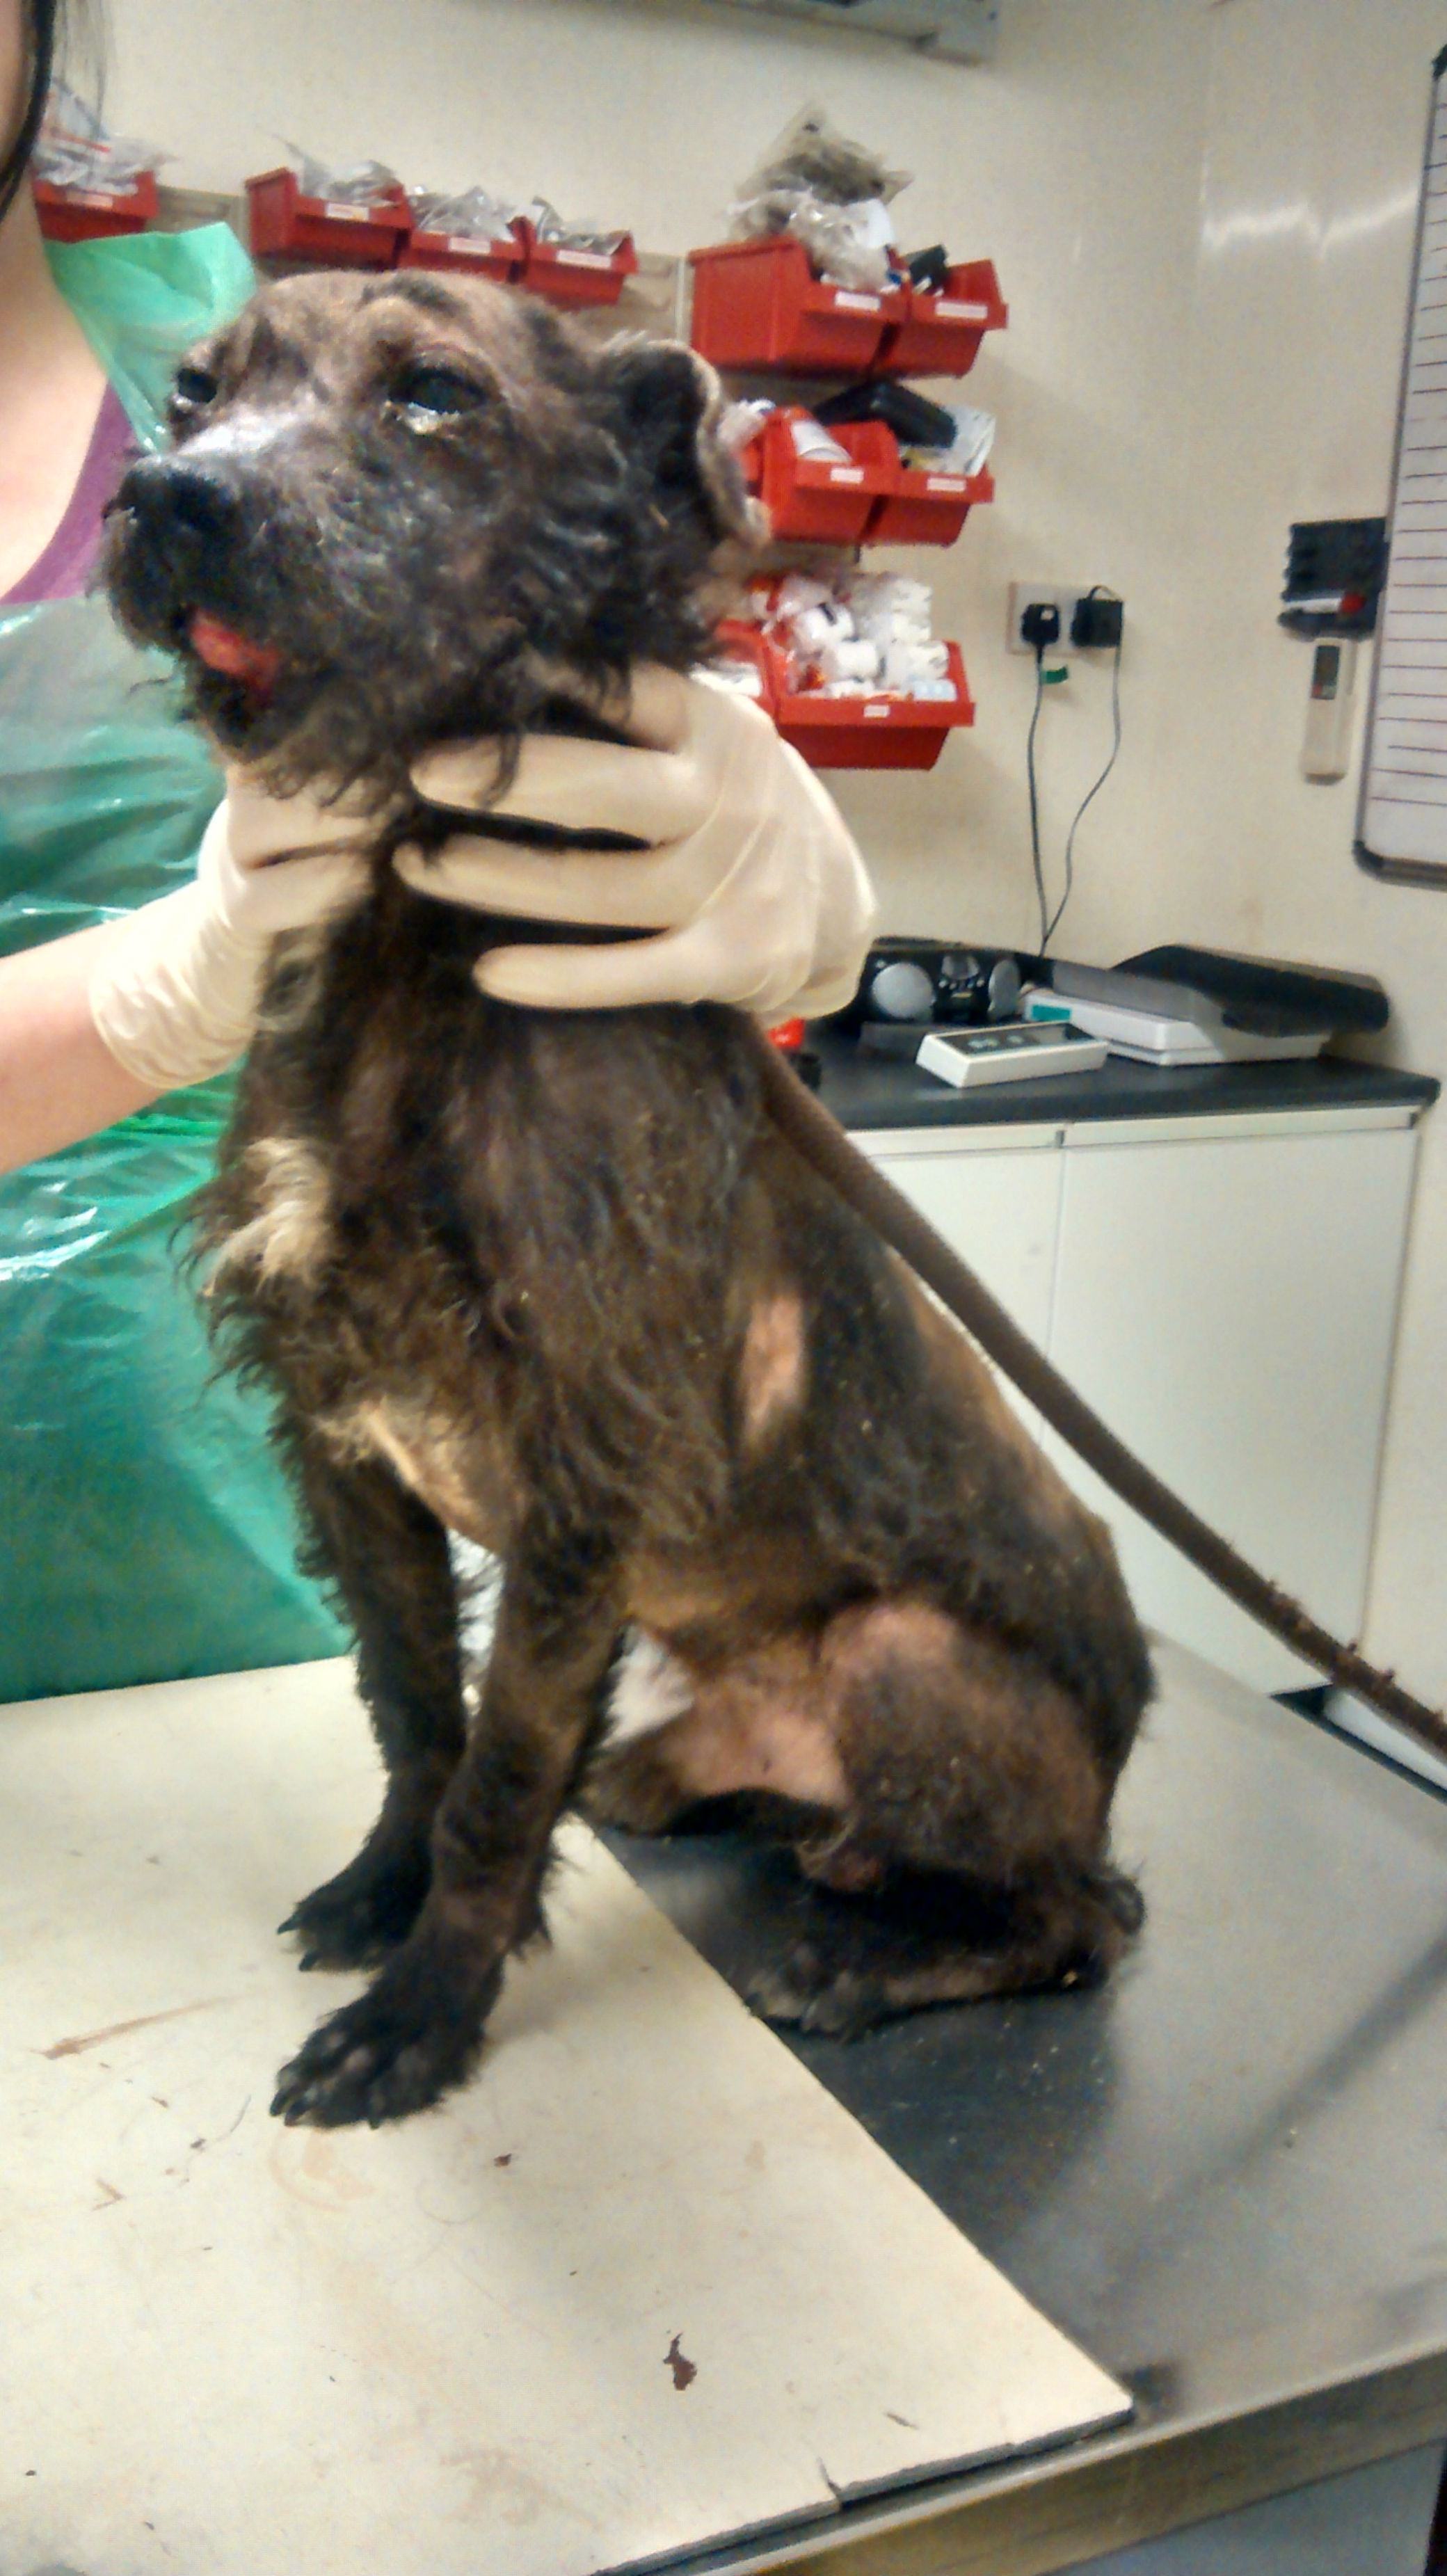 The dog discovered in a severely neglected state near Northallerton